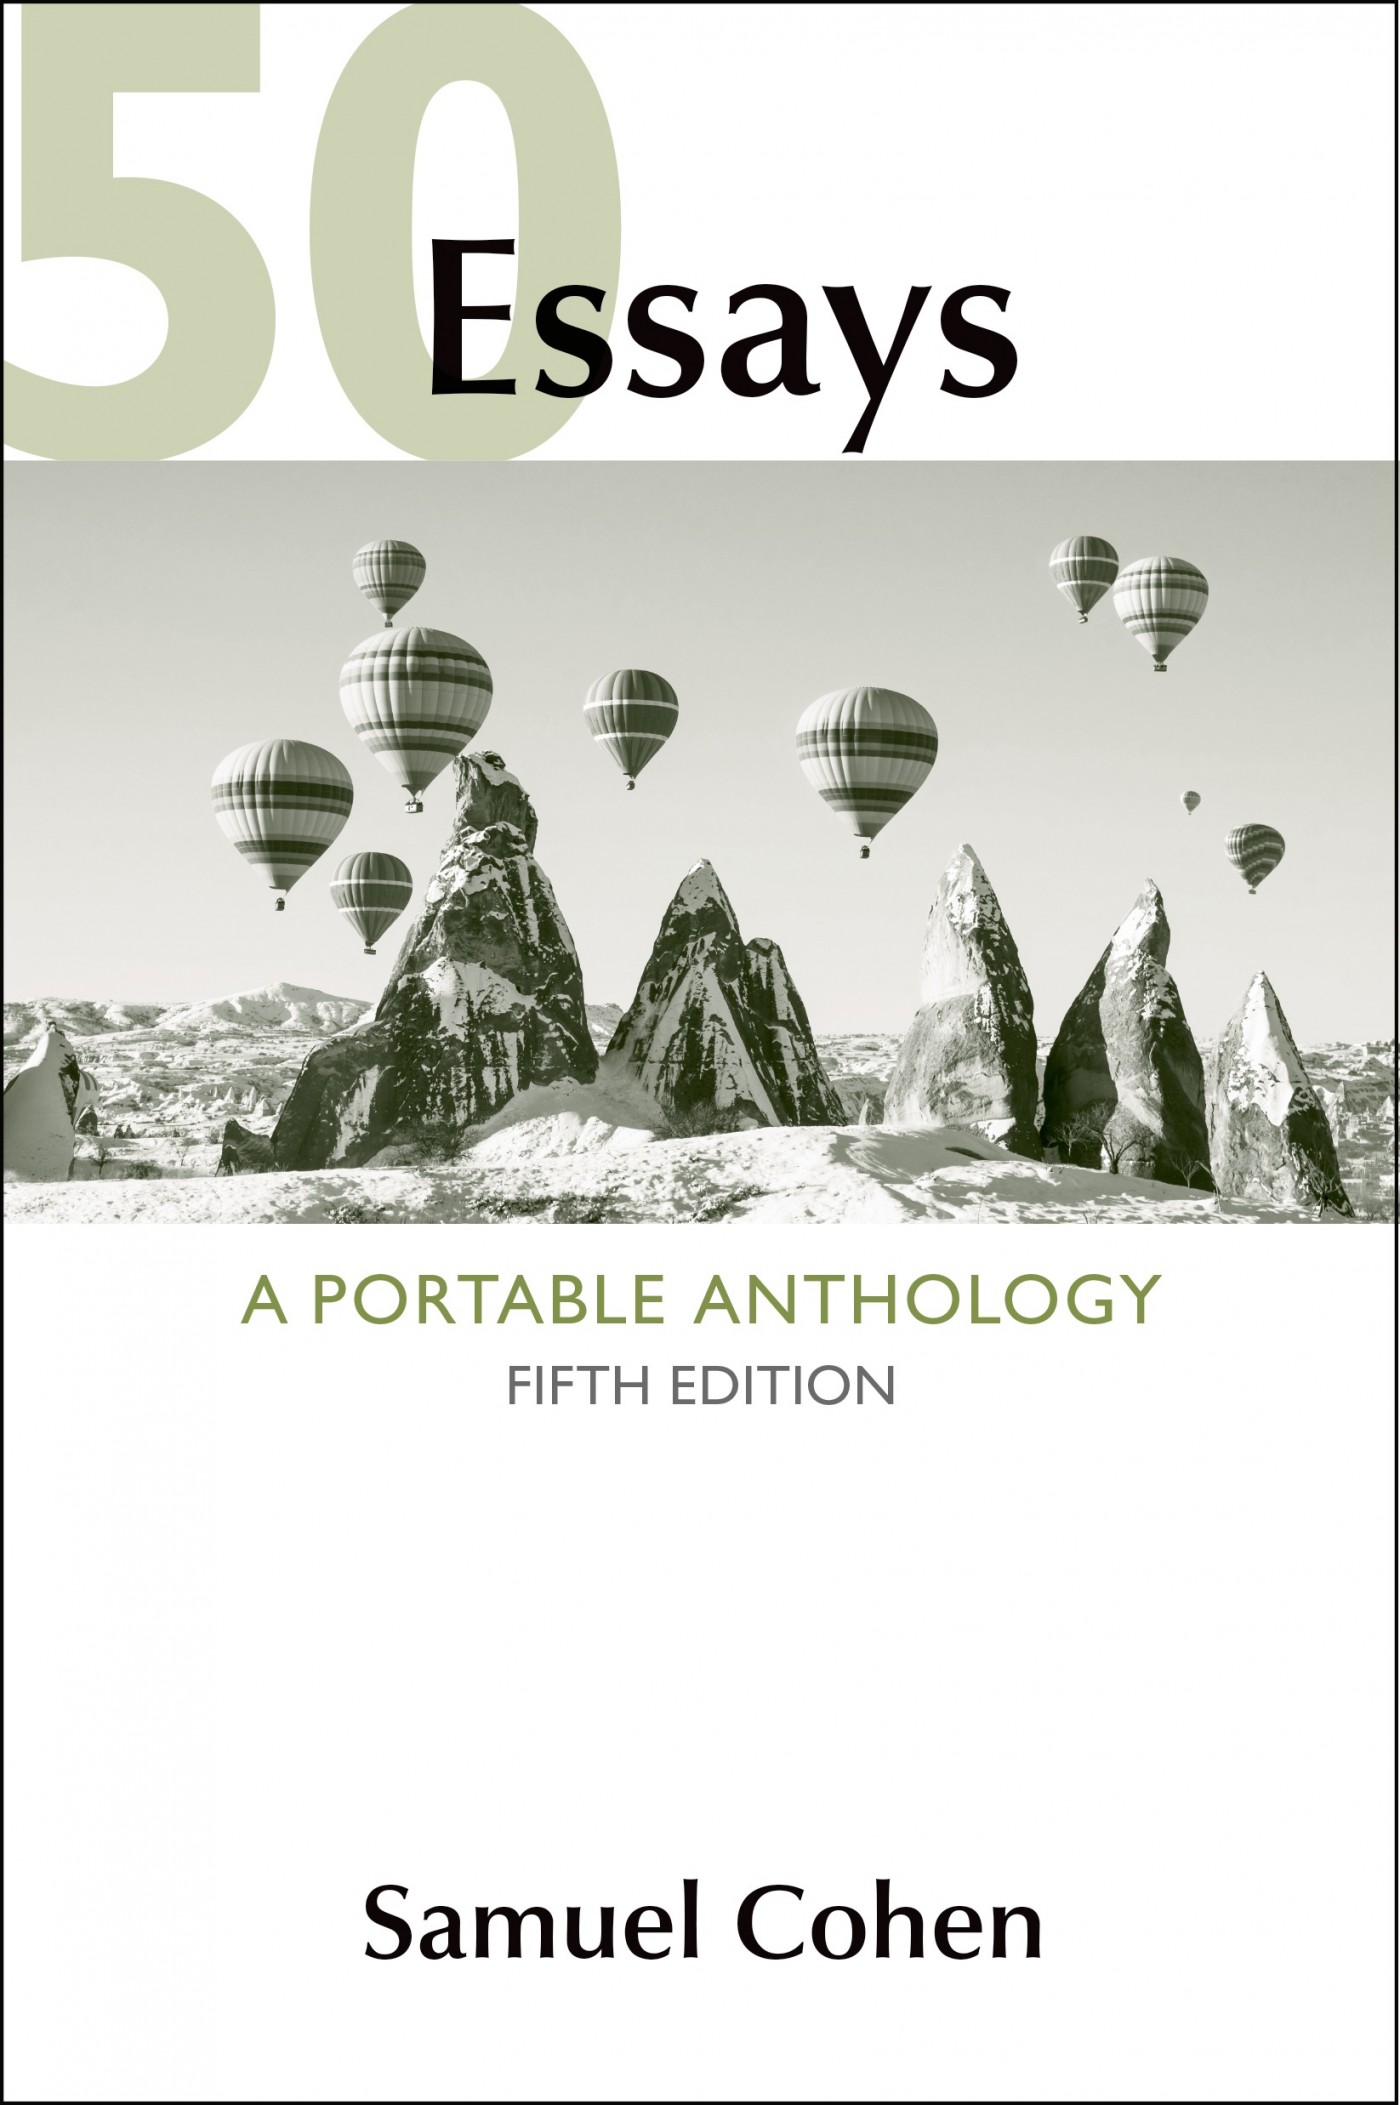 008 Essays Table Of Contents Essay Example Best 50 Great A Portable Anthology 4th Edition 1400